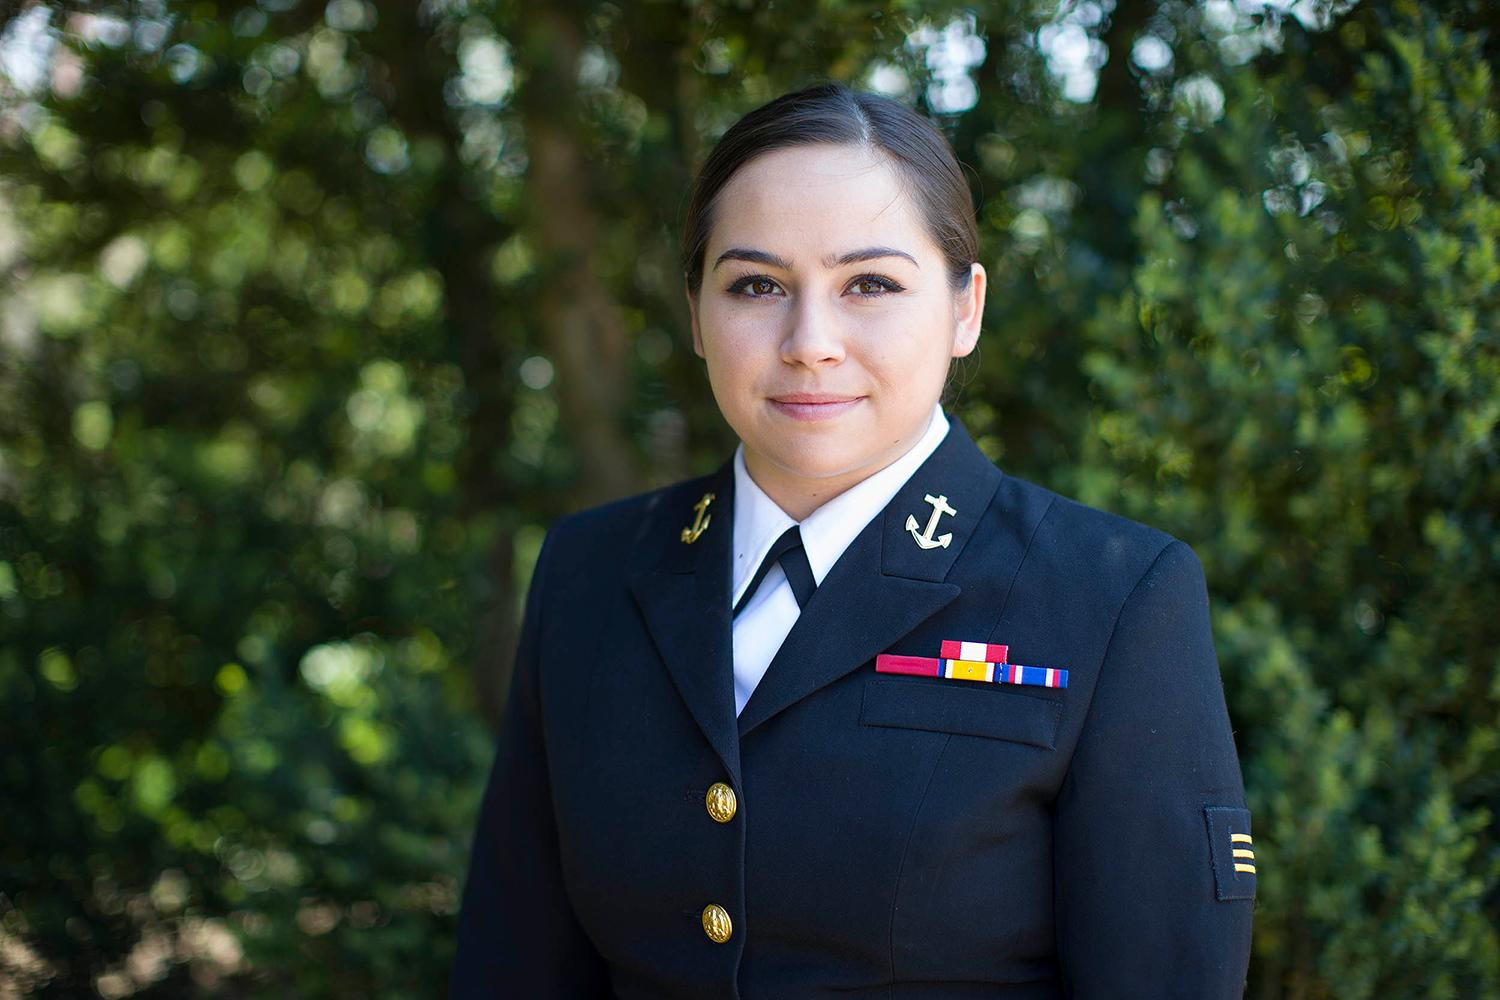 Maribeth Salinas continues a family tradition by entering the military after graduation. (Photo by Richard Dizon, University Communications)